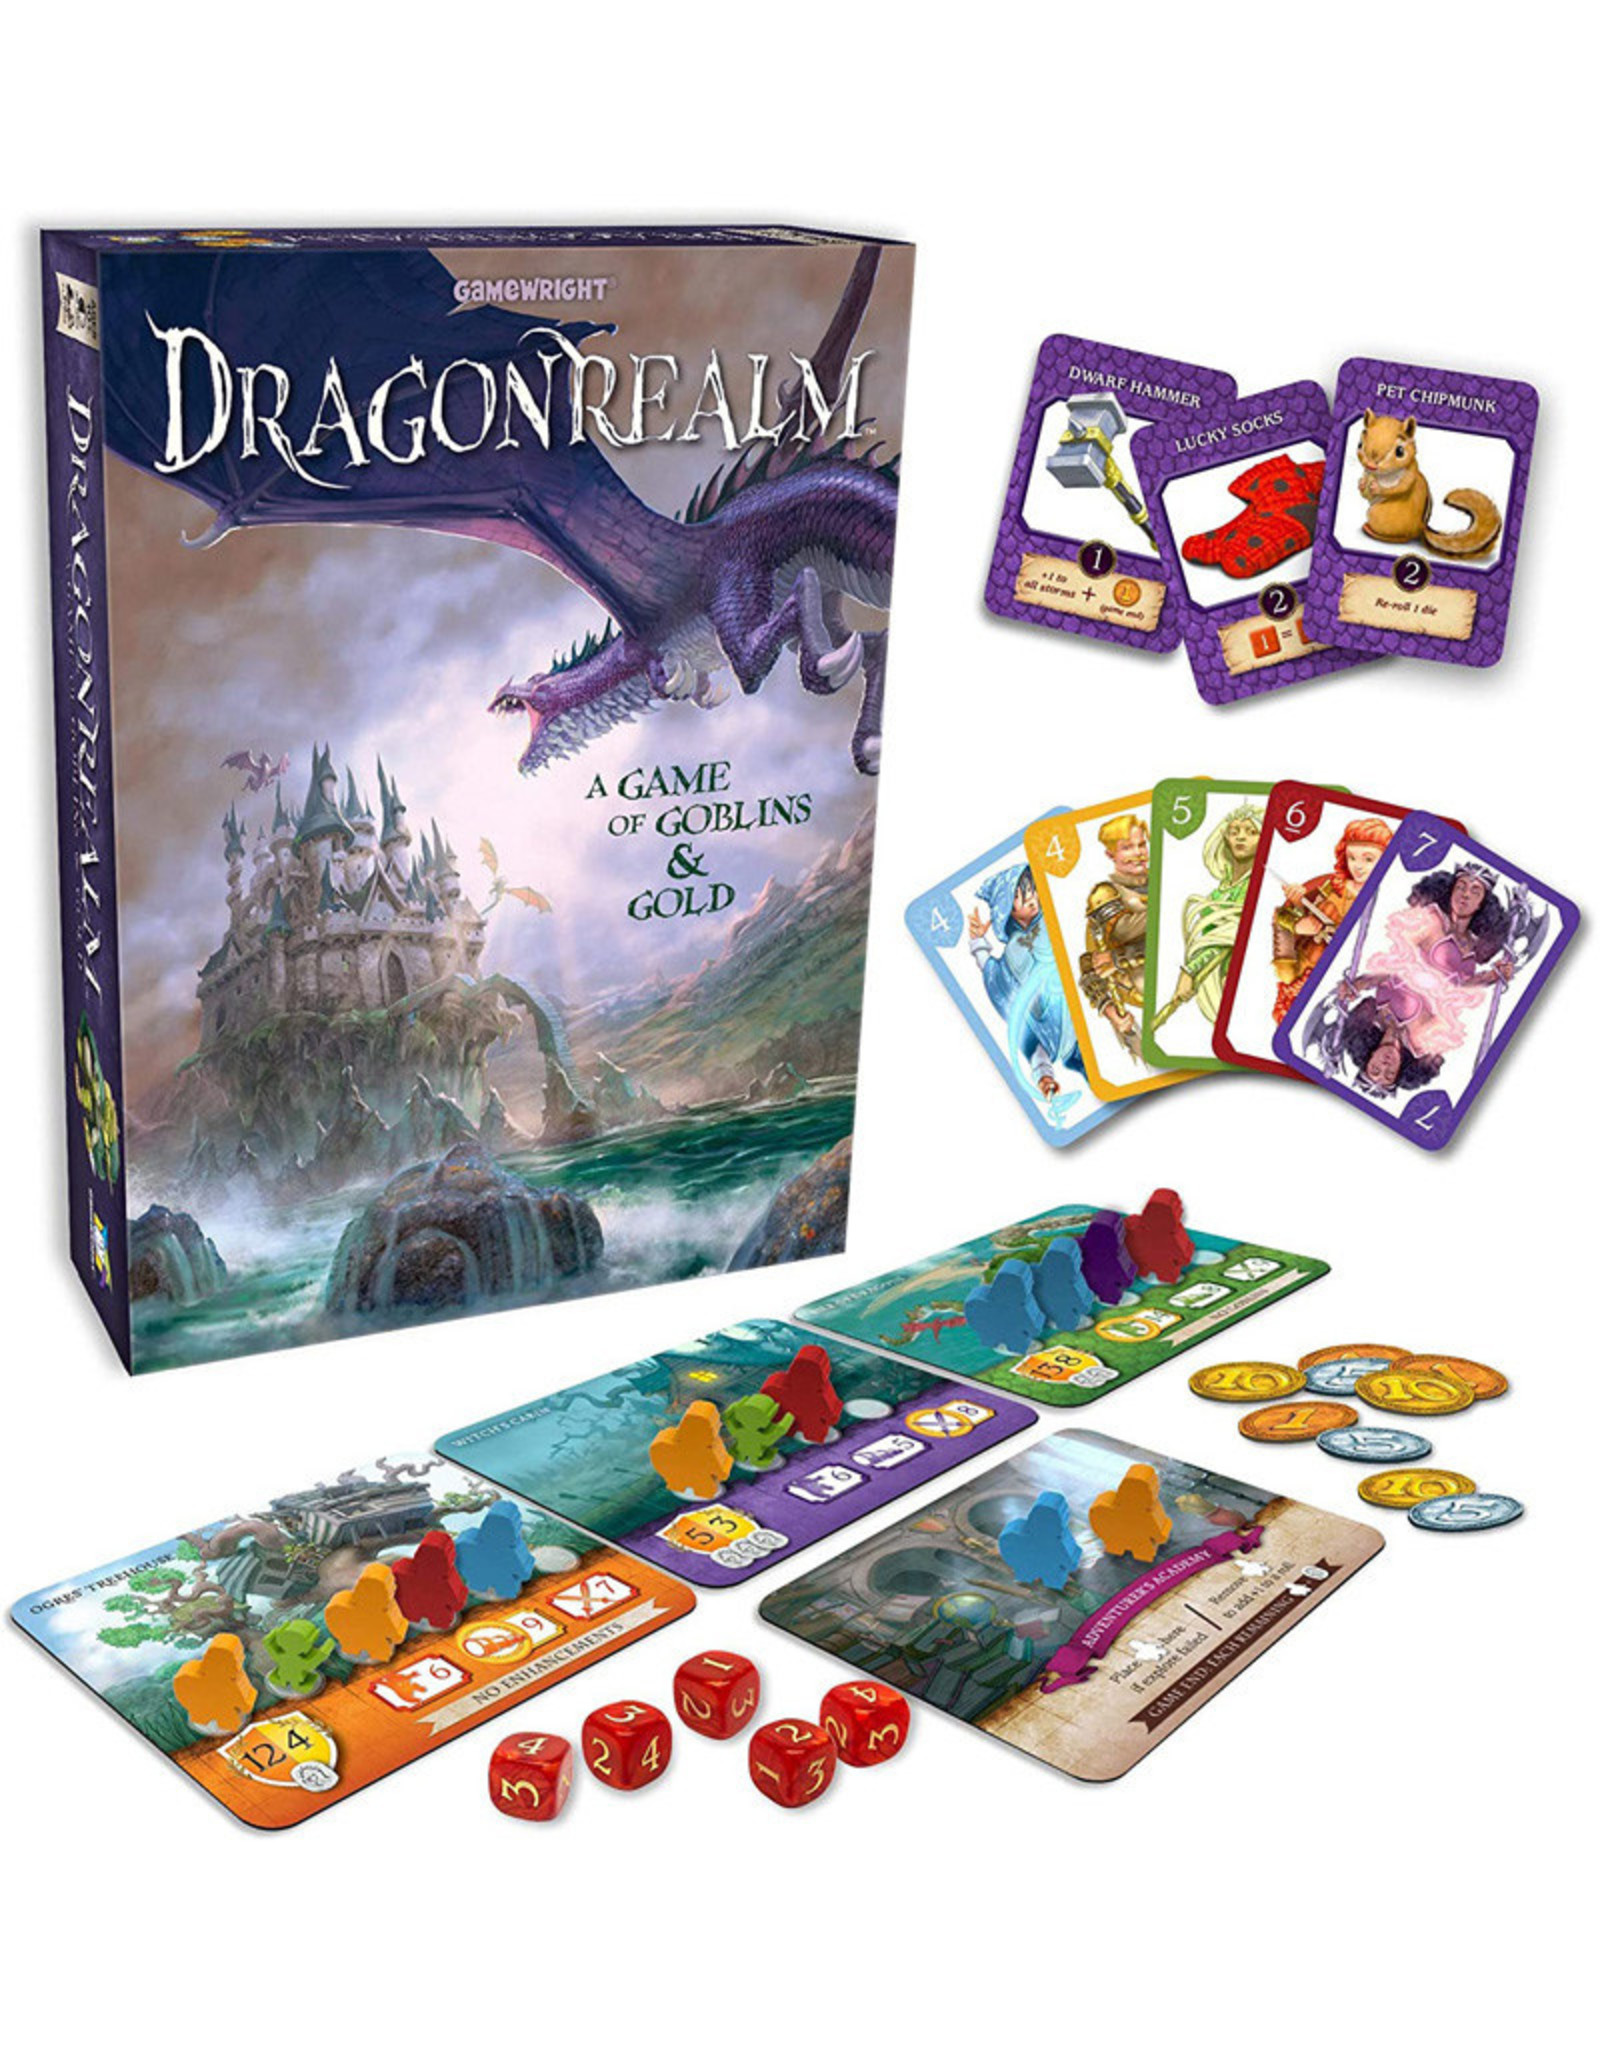 Gamewright Dragonrealm A Game of Goblins & Gold